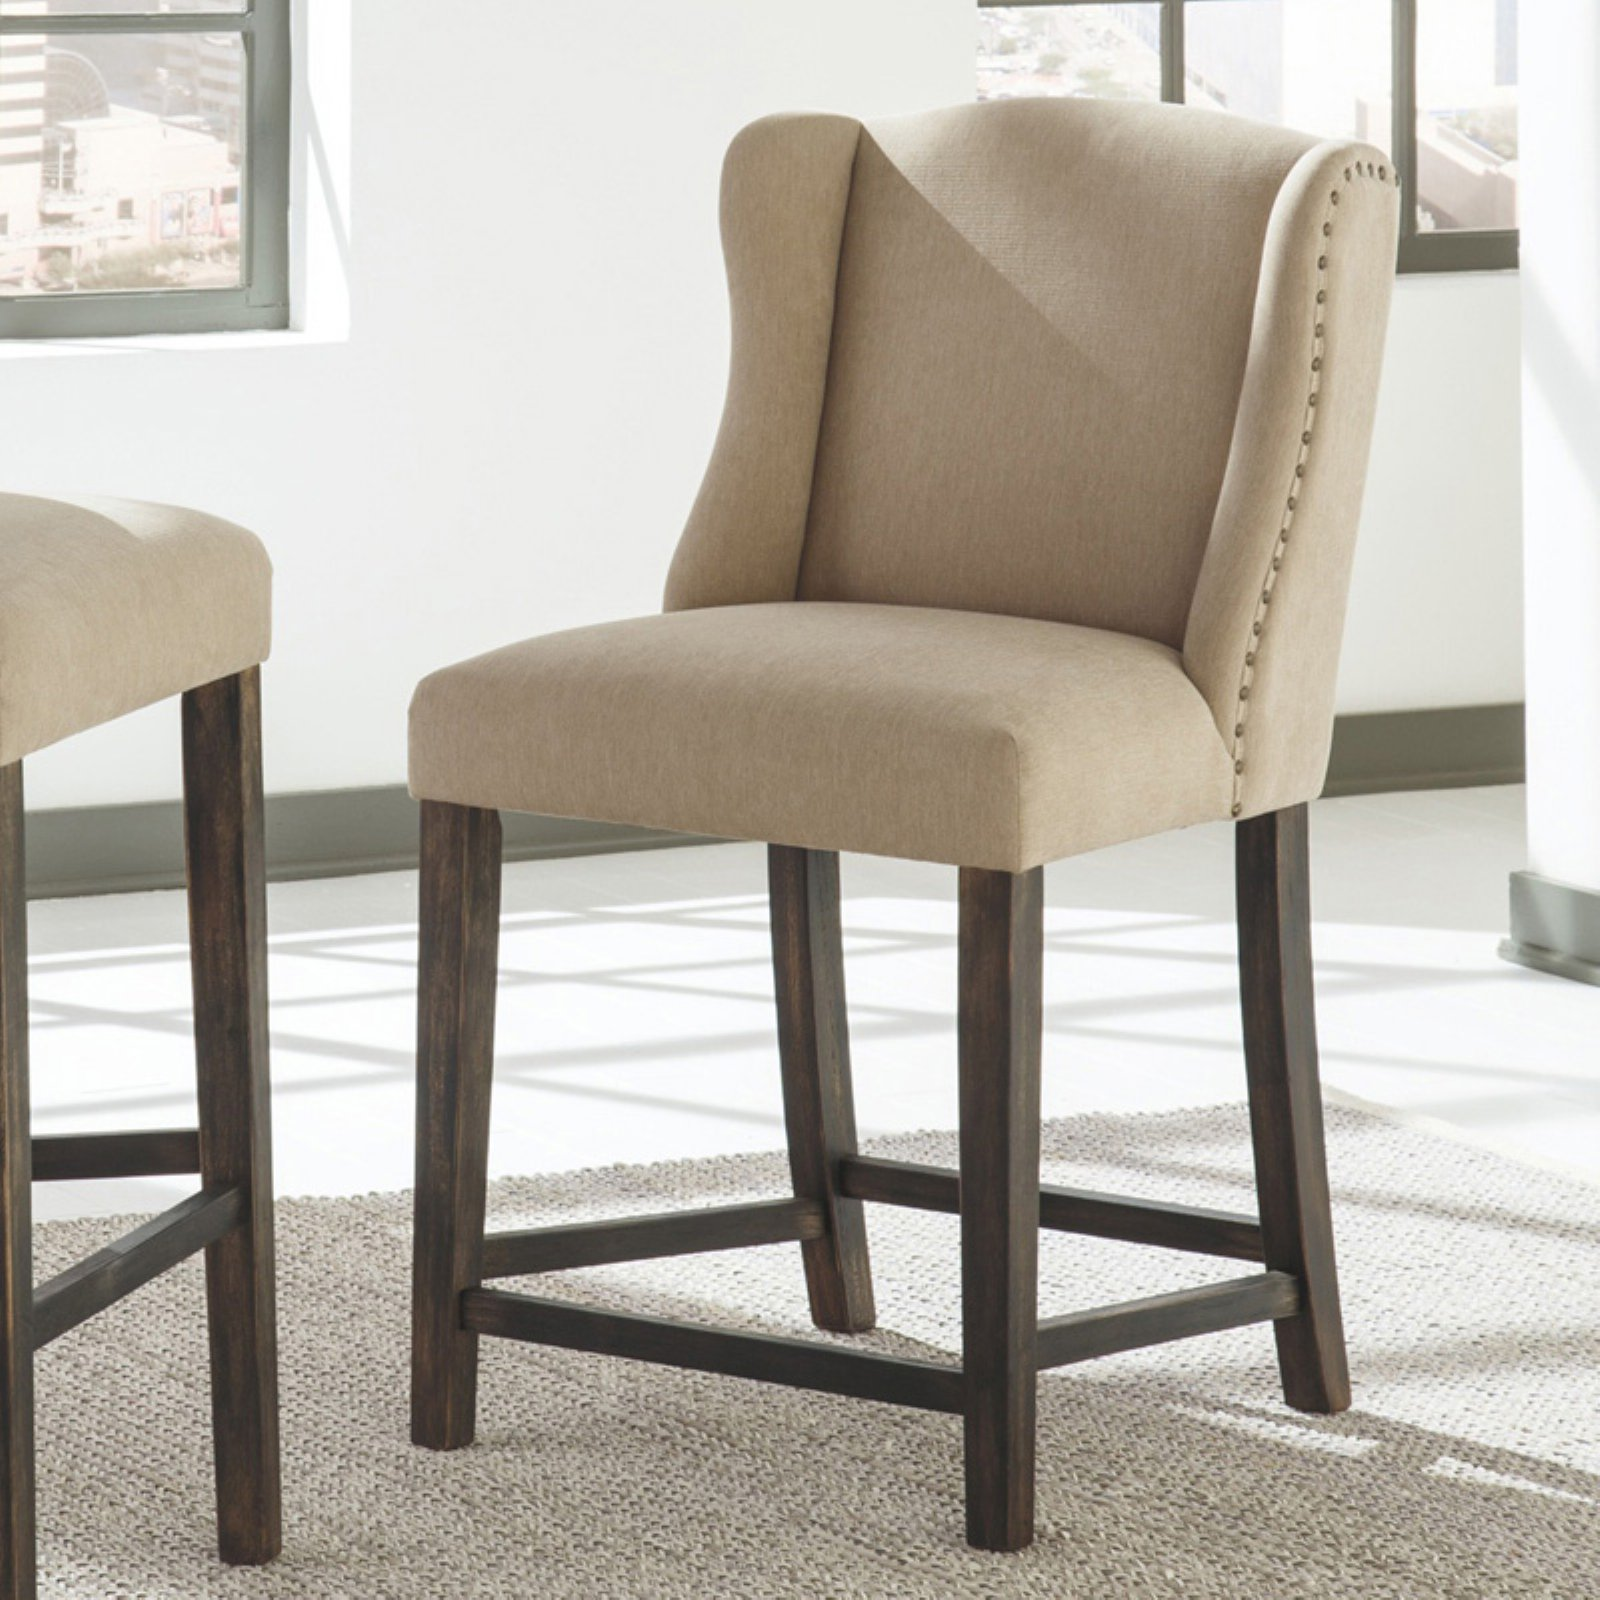 Signature Design by Ashley Moriann Upholstered 24.25 in. Counter Stool - Set of 2